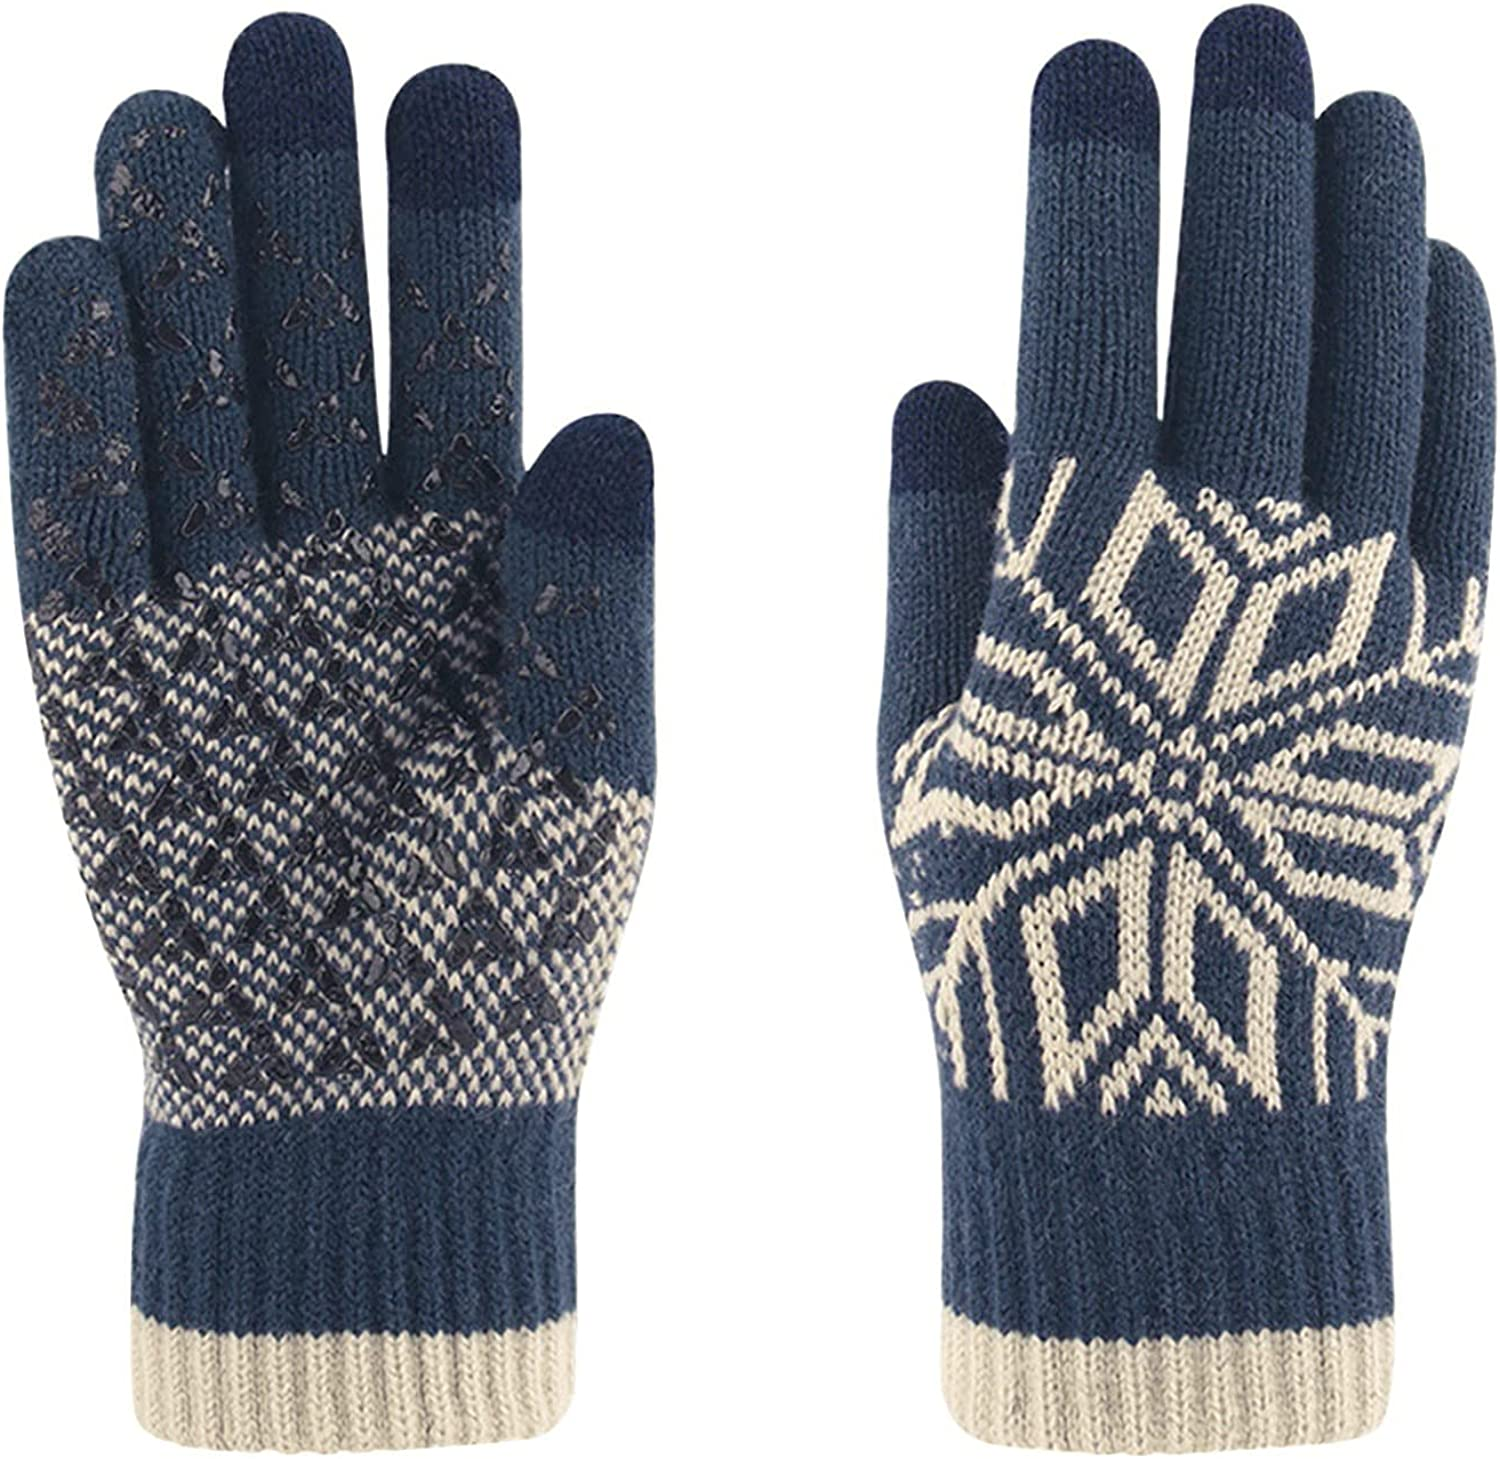 Winter Gloves for Women Cold Weather,Warm Thermal Gloves for Running Fashion/Prom/Warm/Bicycle Gloves